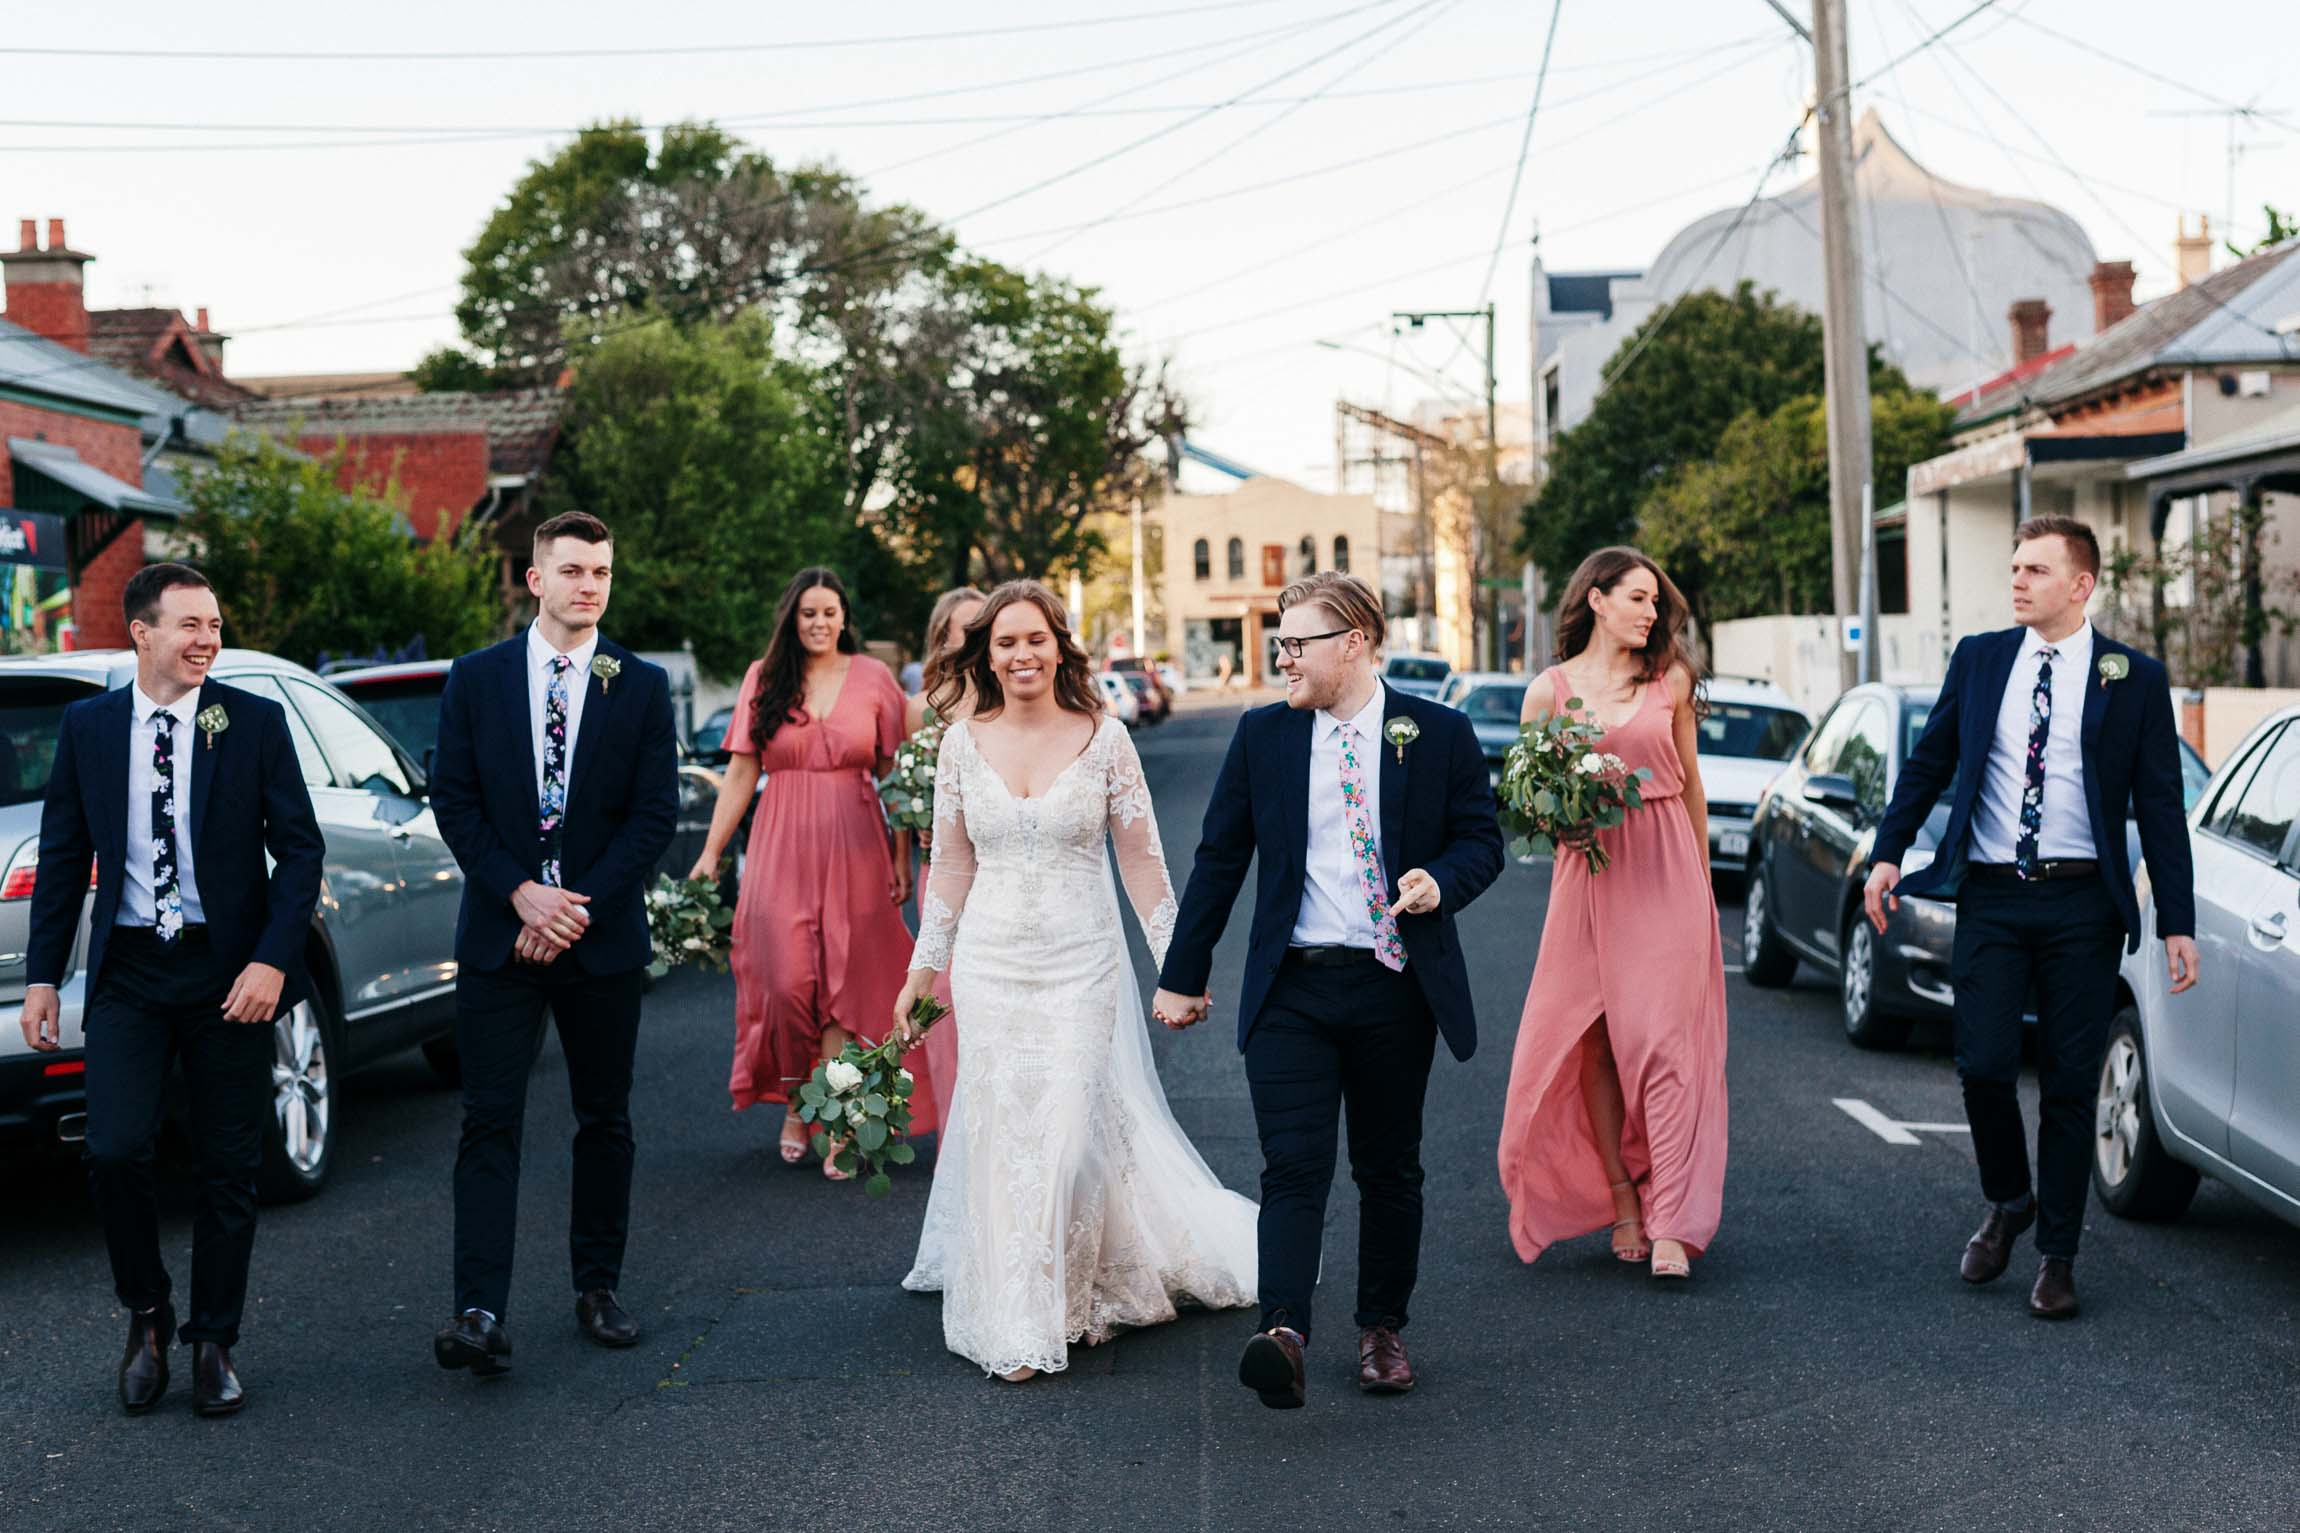 lachlan-scallion-melbourne-victoria-austrlia-mornington-peninsula-candid-relaxed-natural-chilled-wedding-photographyglasshaus-richmond-586.jpg